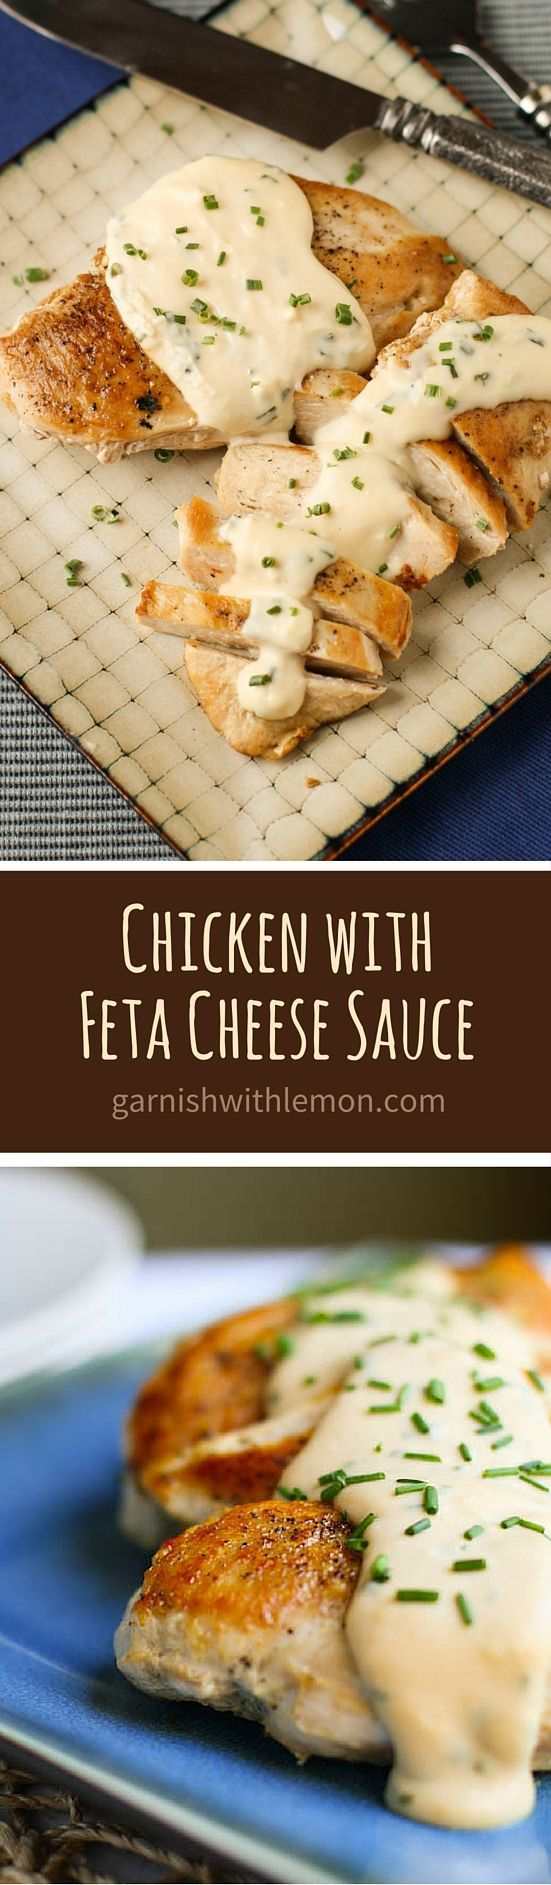 Don't miss our family's favorite easy dinner recipe - Chicken with Feta Cheese Sauce! Add on top of pasta! Not so healthy but looks delicious!